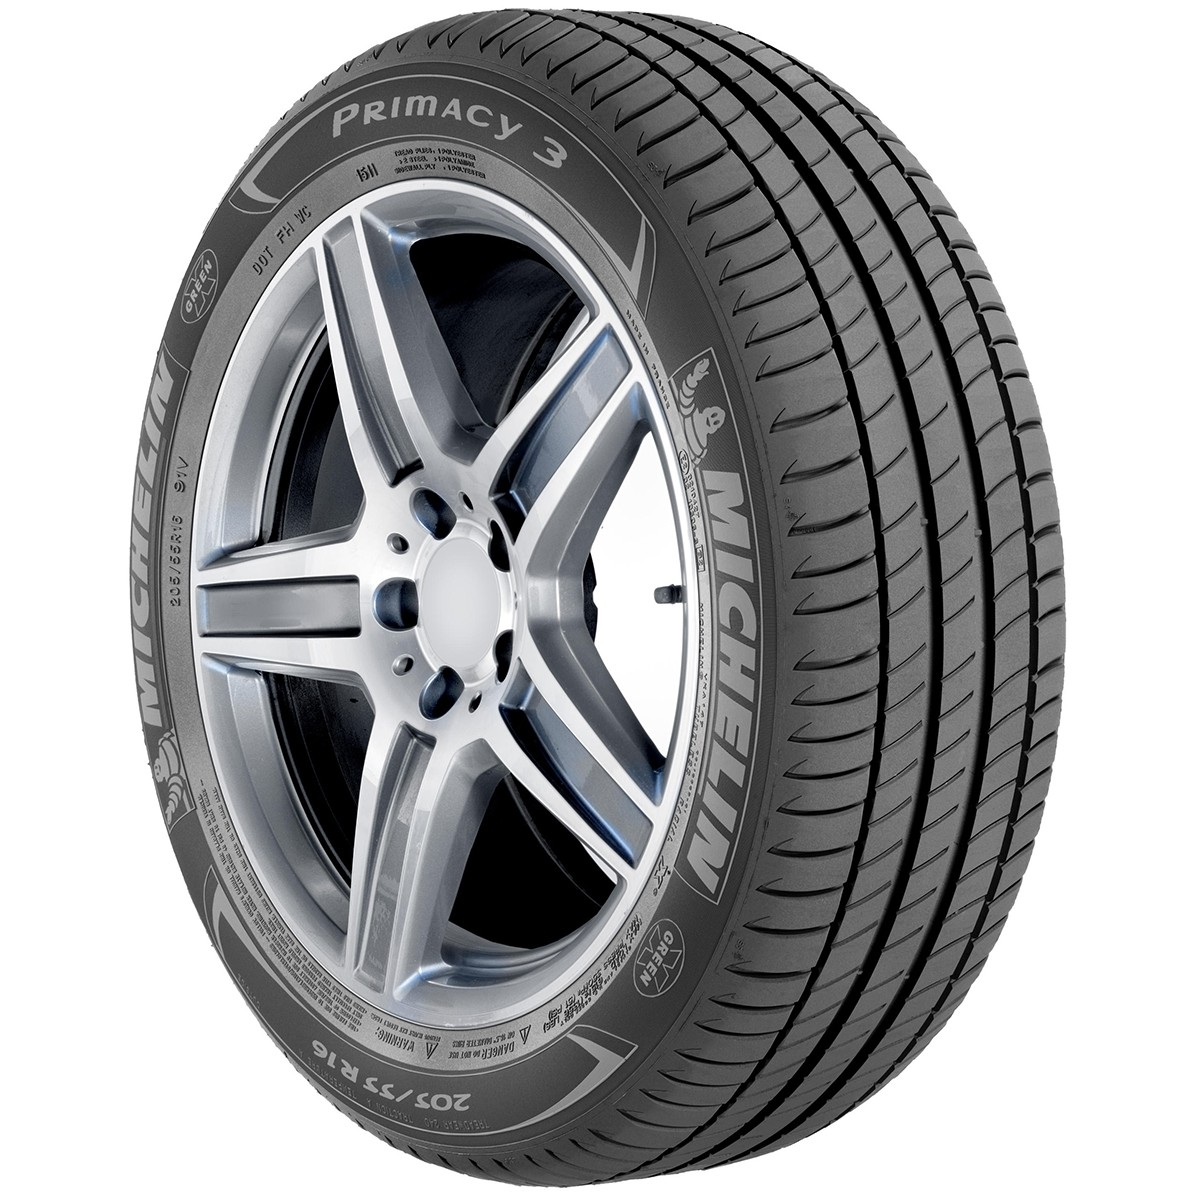 215/55 R17 [98] W PRIMACY 3 XL - MICHELIN